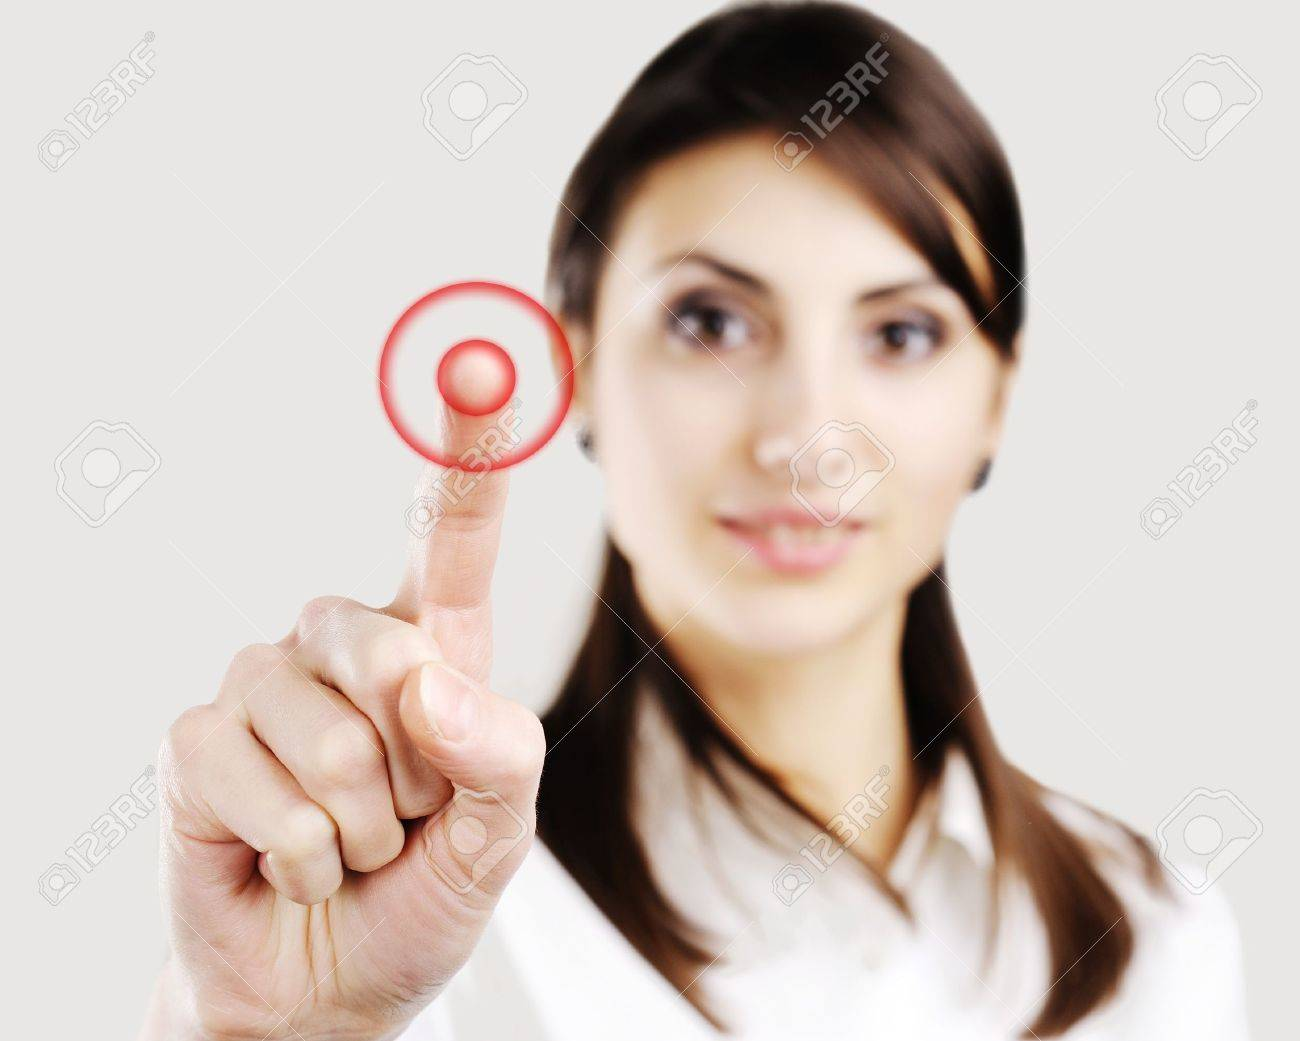 Young business woman pointing at something on screen Stock Photo - 8983316